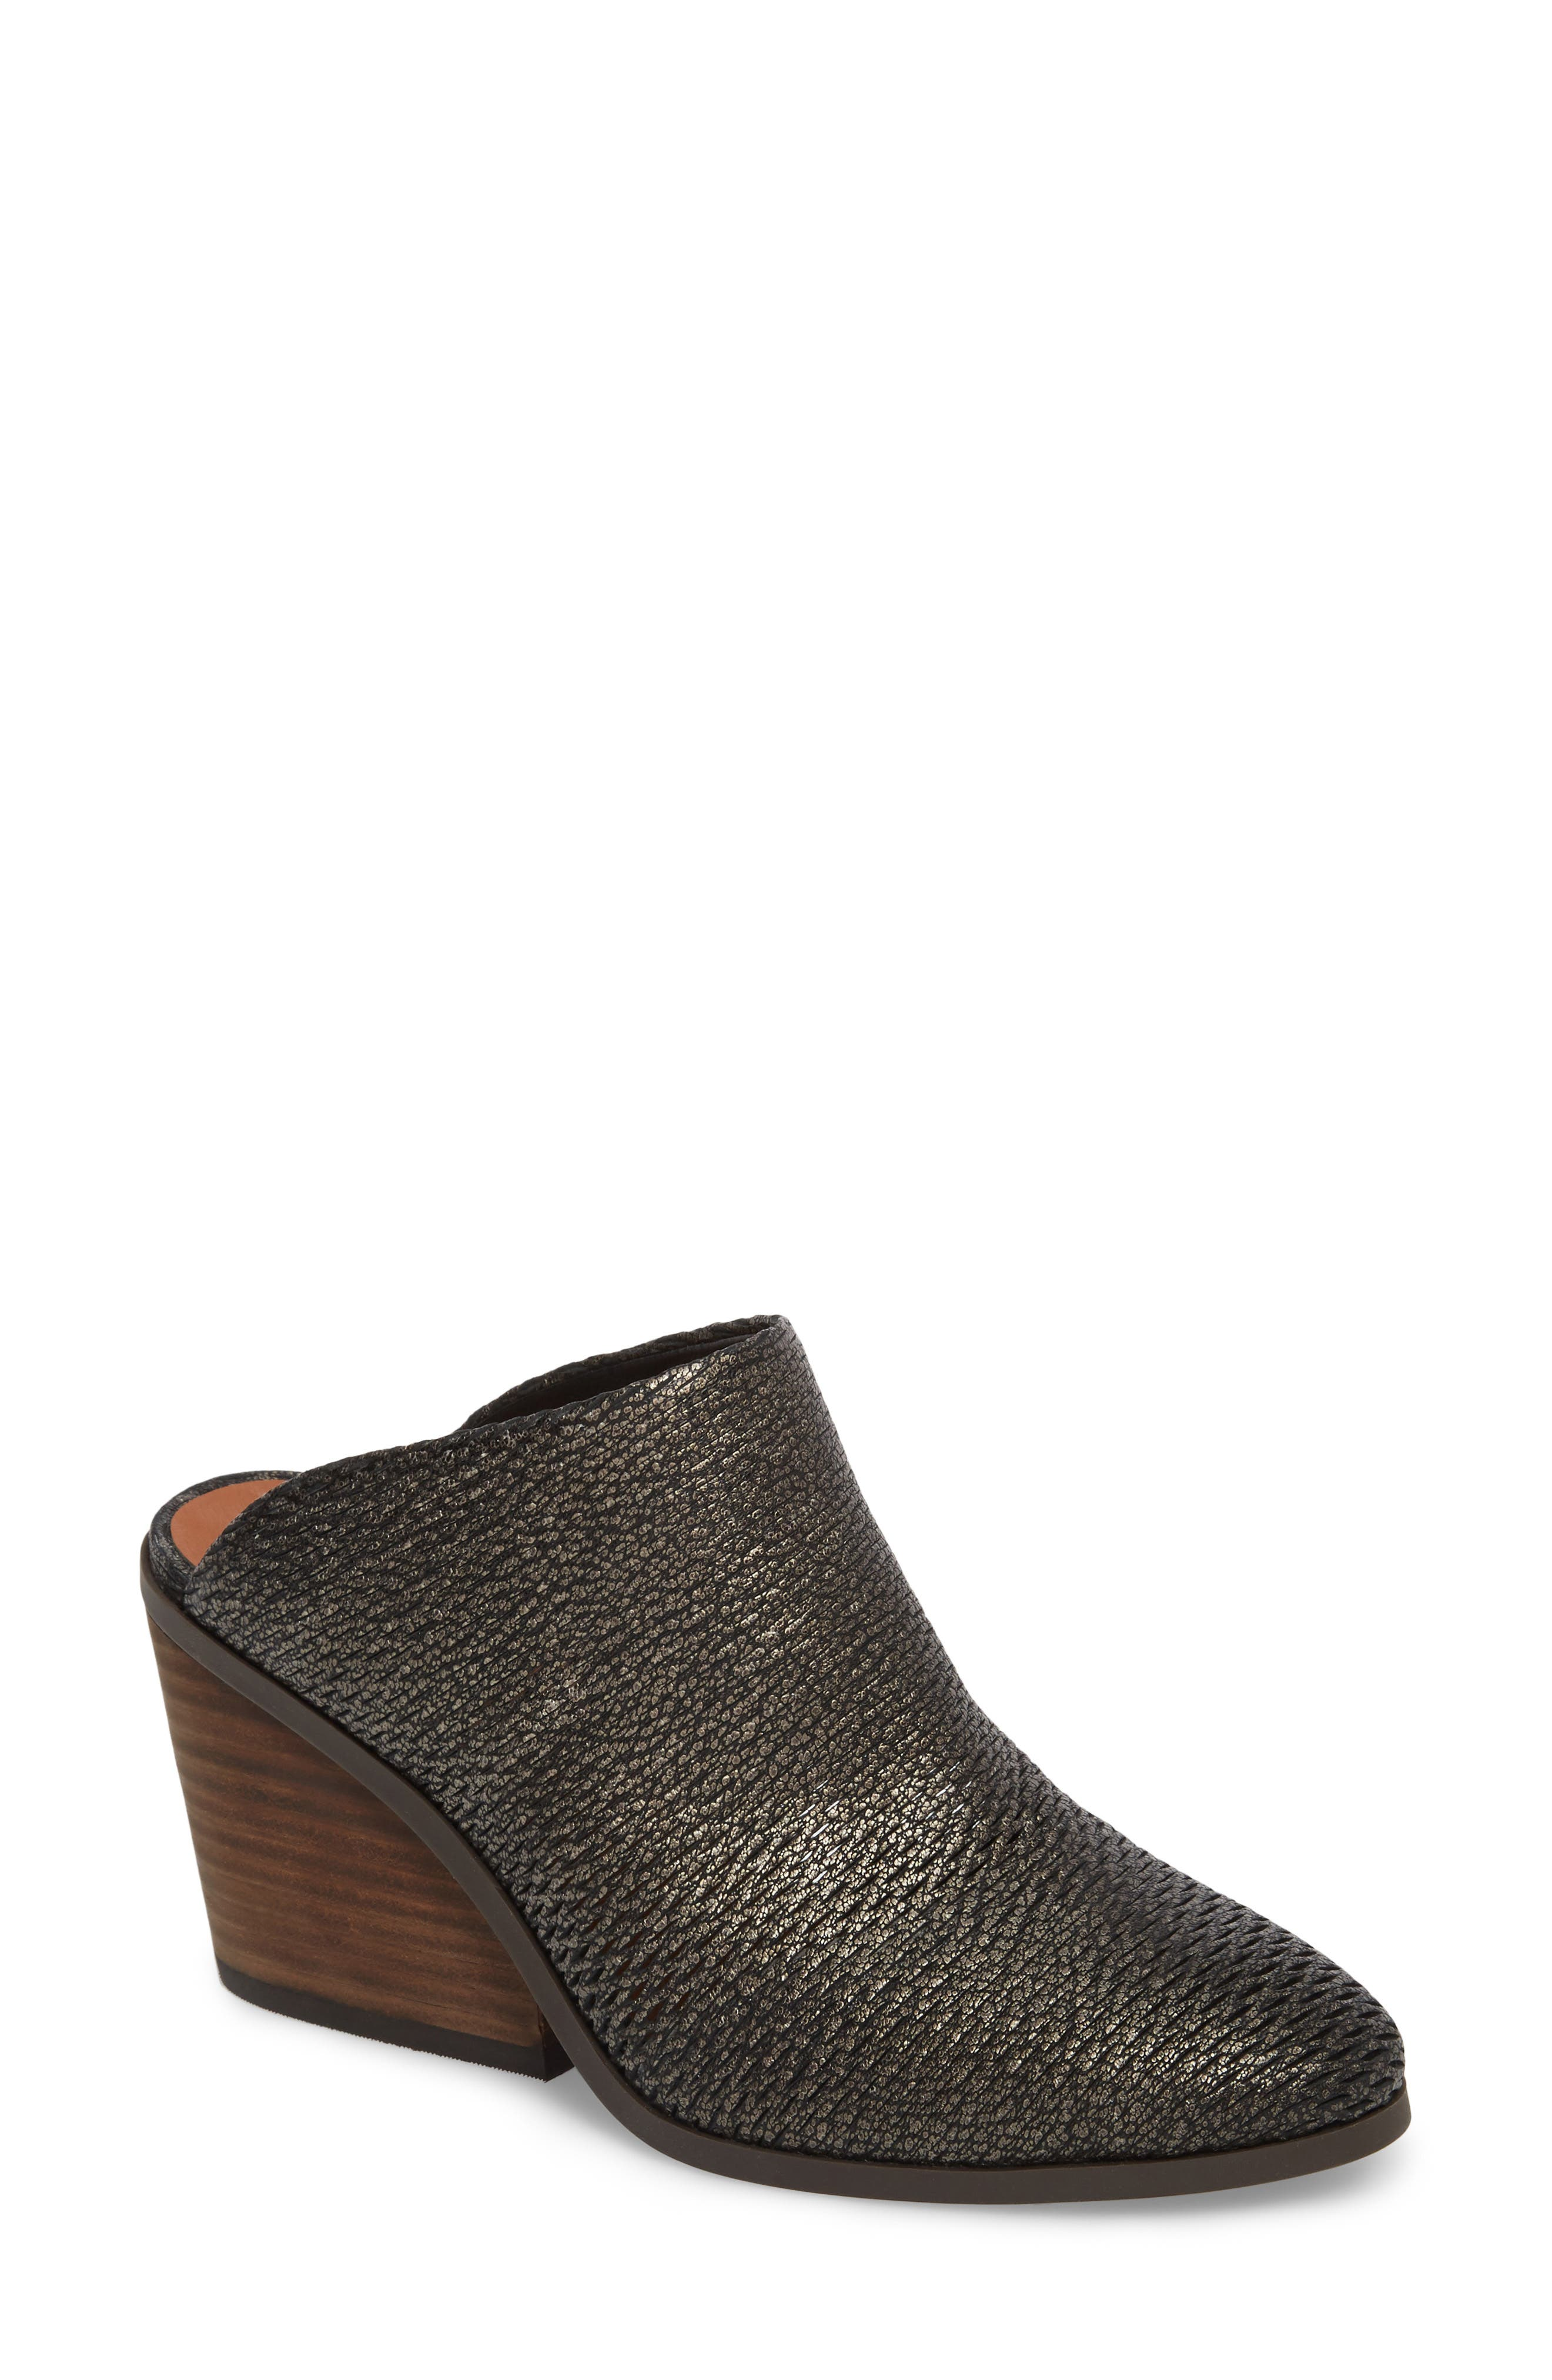 Larsson Mule,                         Main,                         color, Black Leather